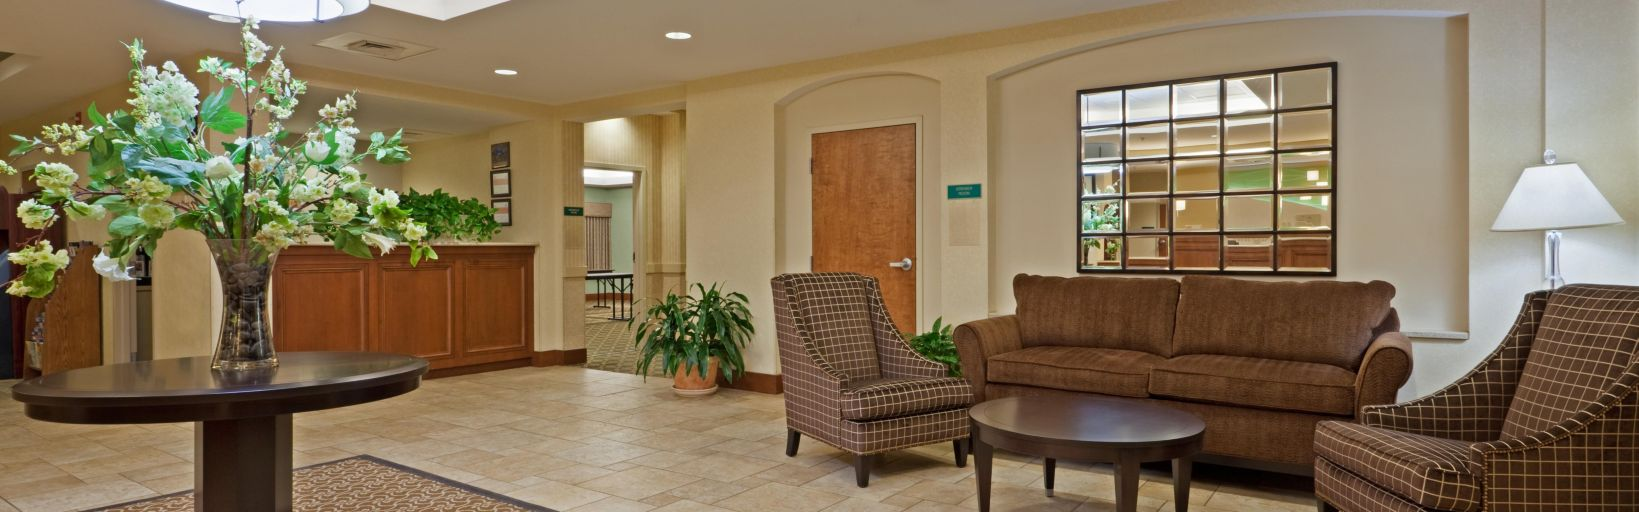 Our Manchester NH Hotels Entrance Welcoming Lobby